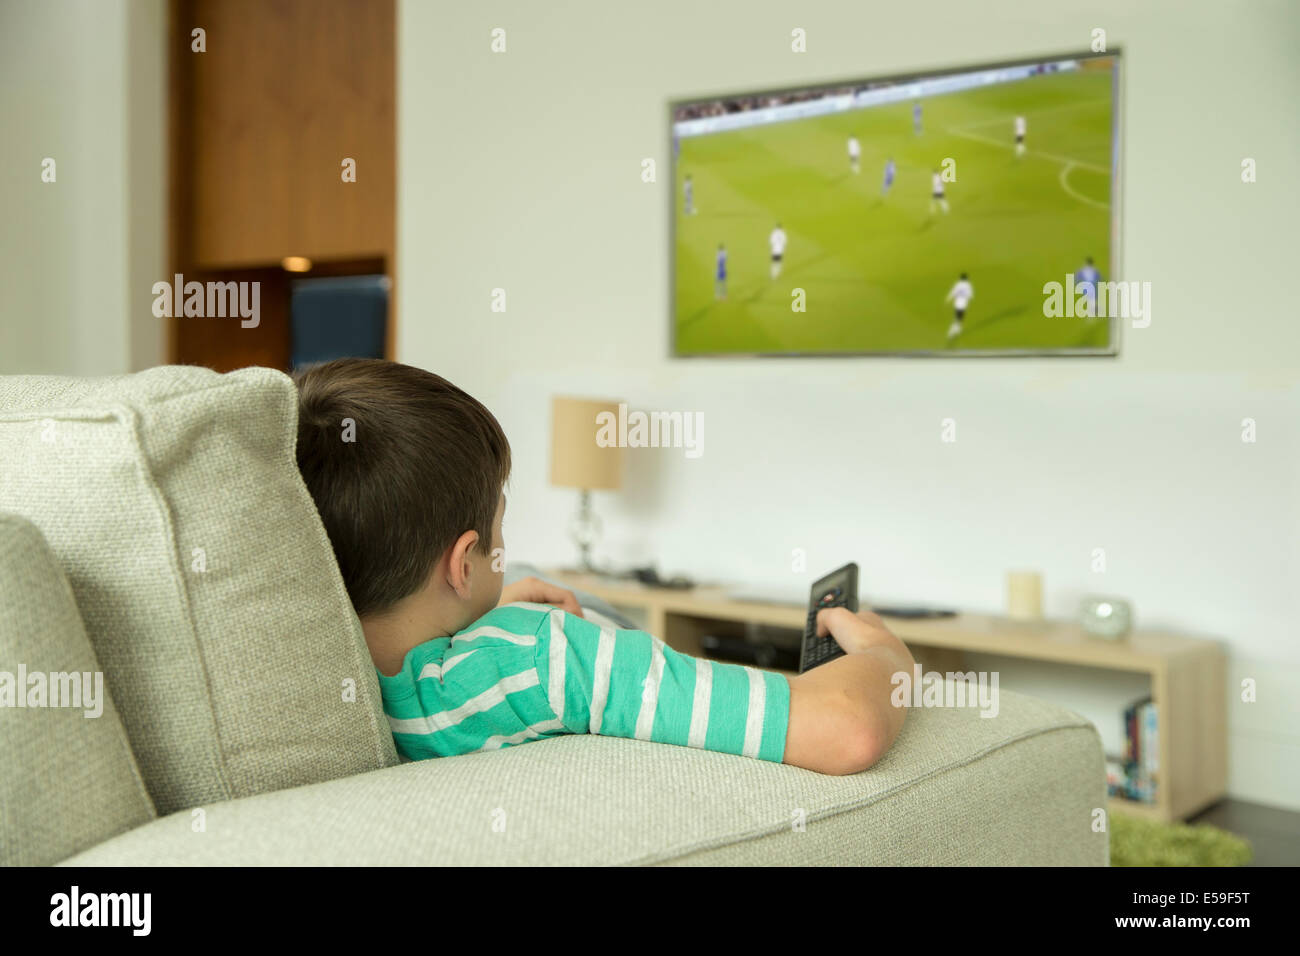 Boy watching television in living room - Stock Image